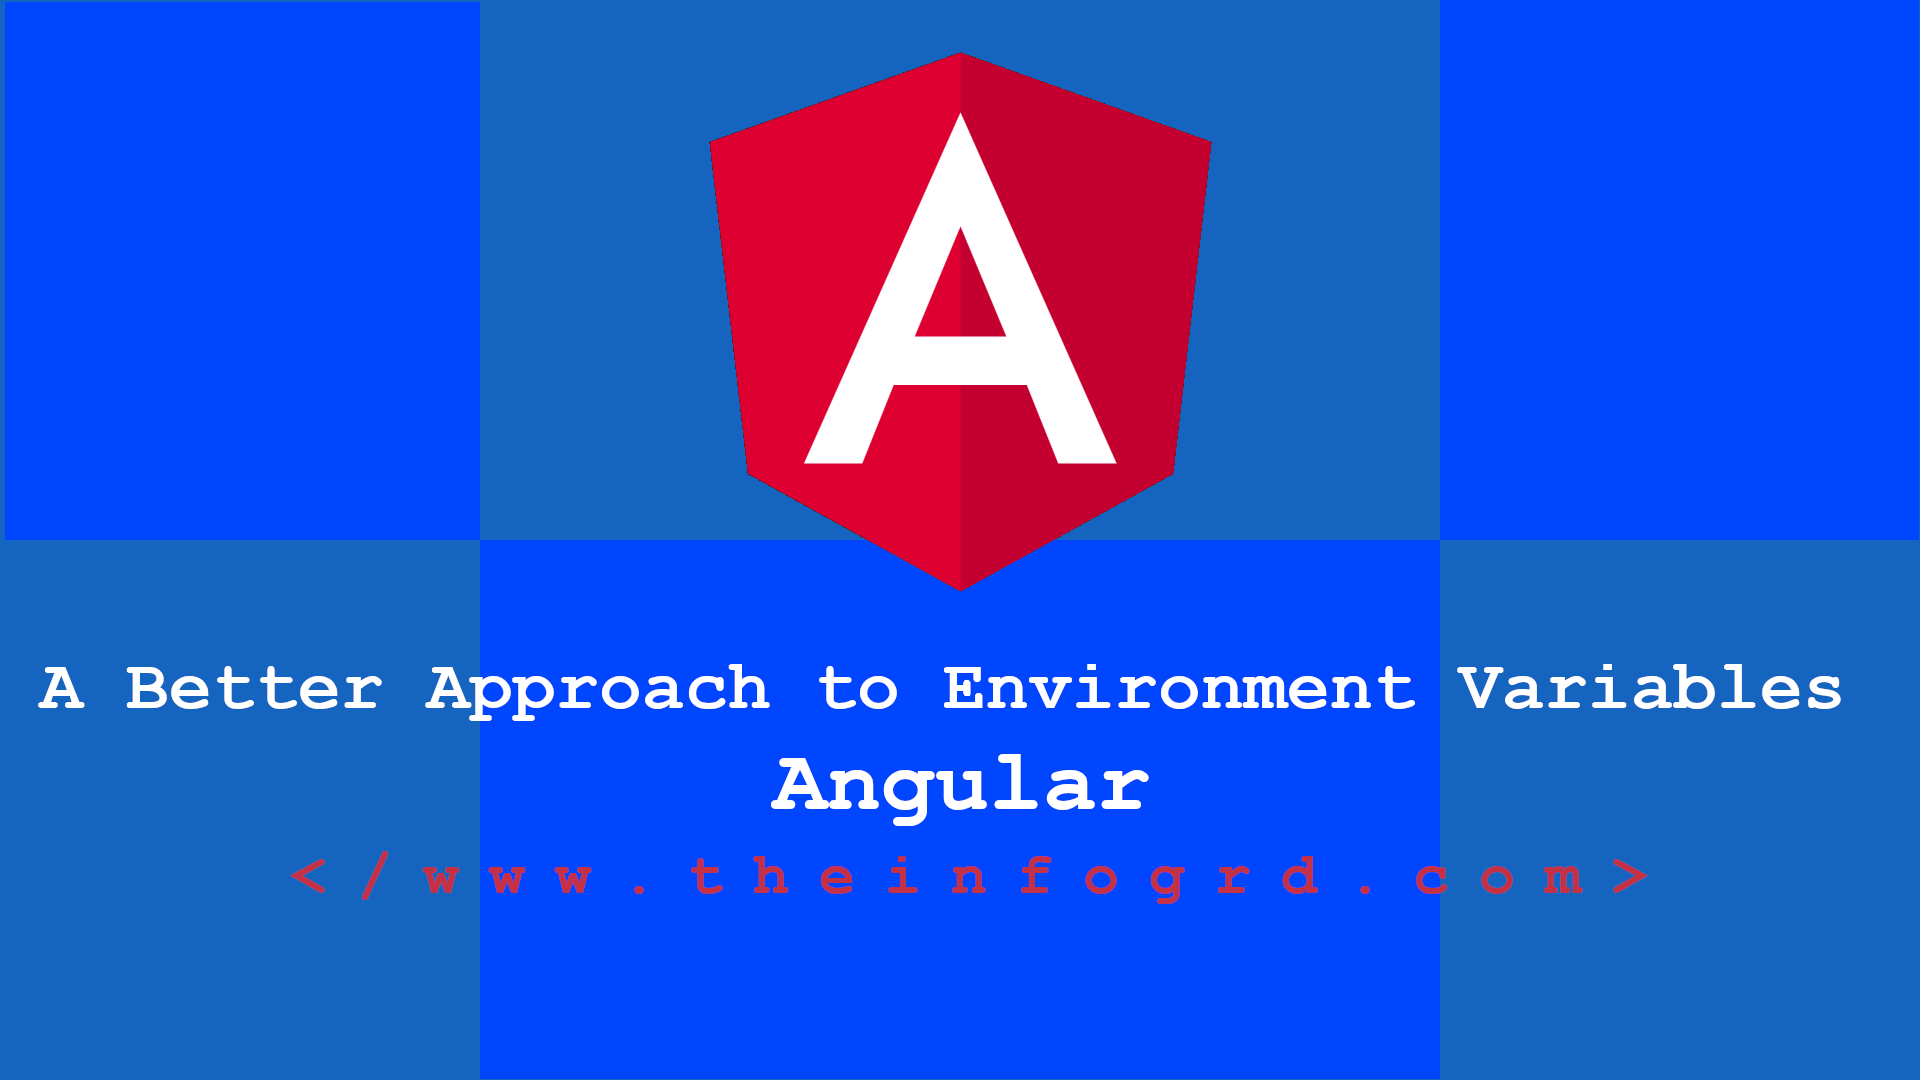 A Better Approach to Environment Variables in Angular